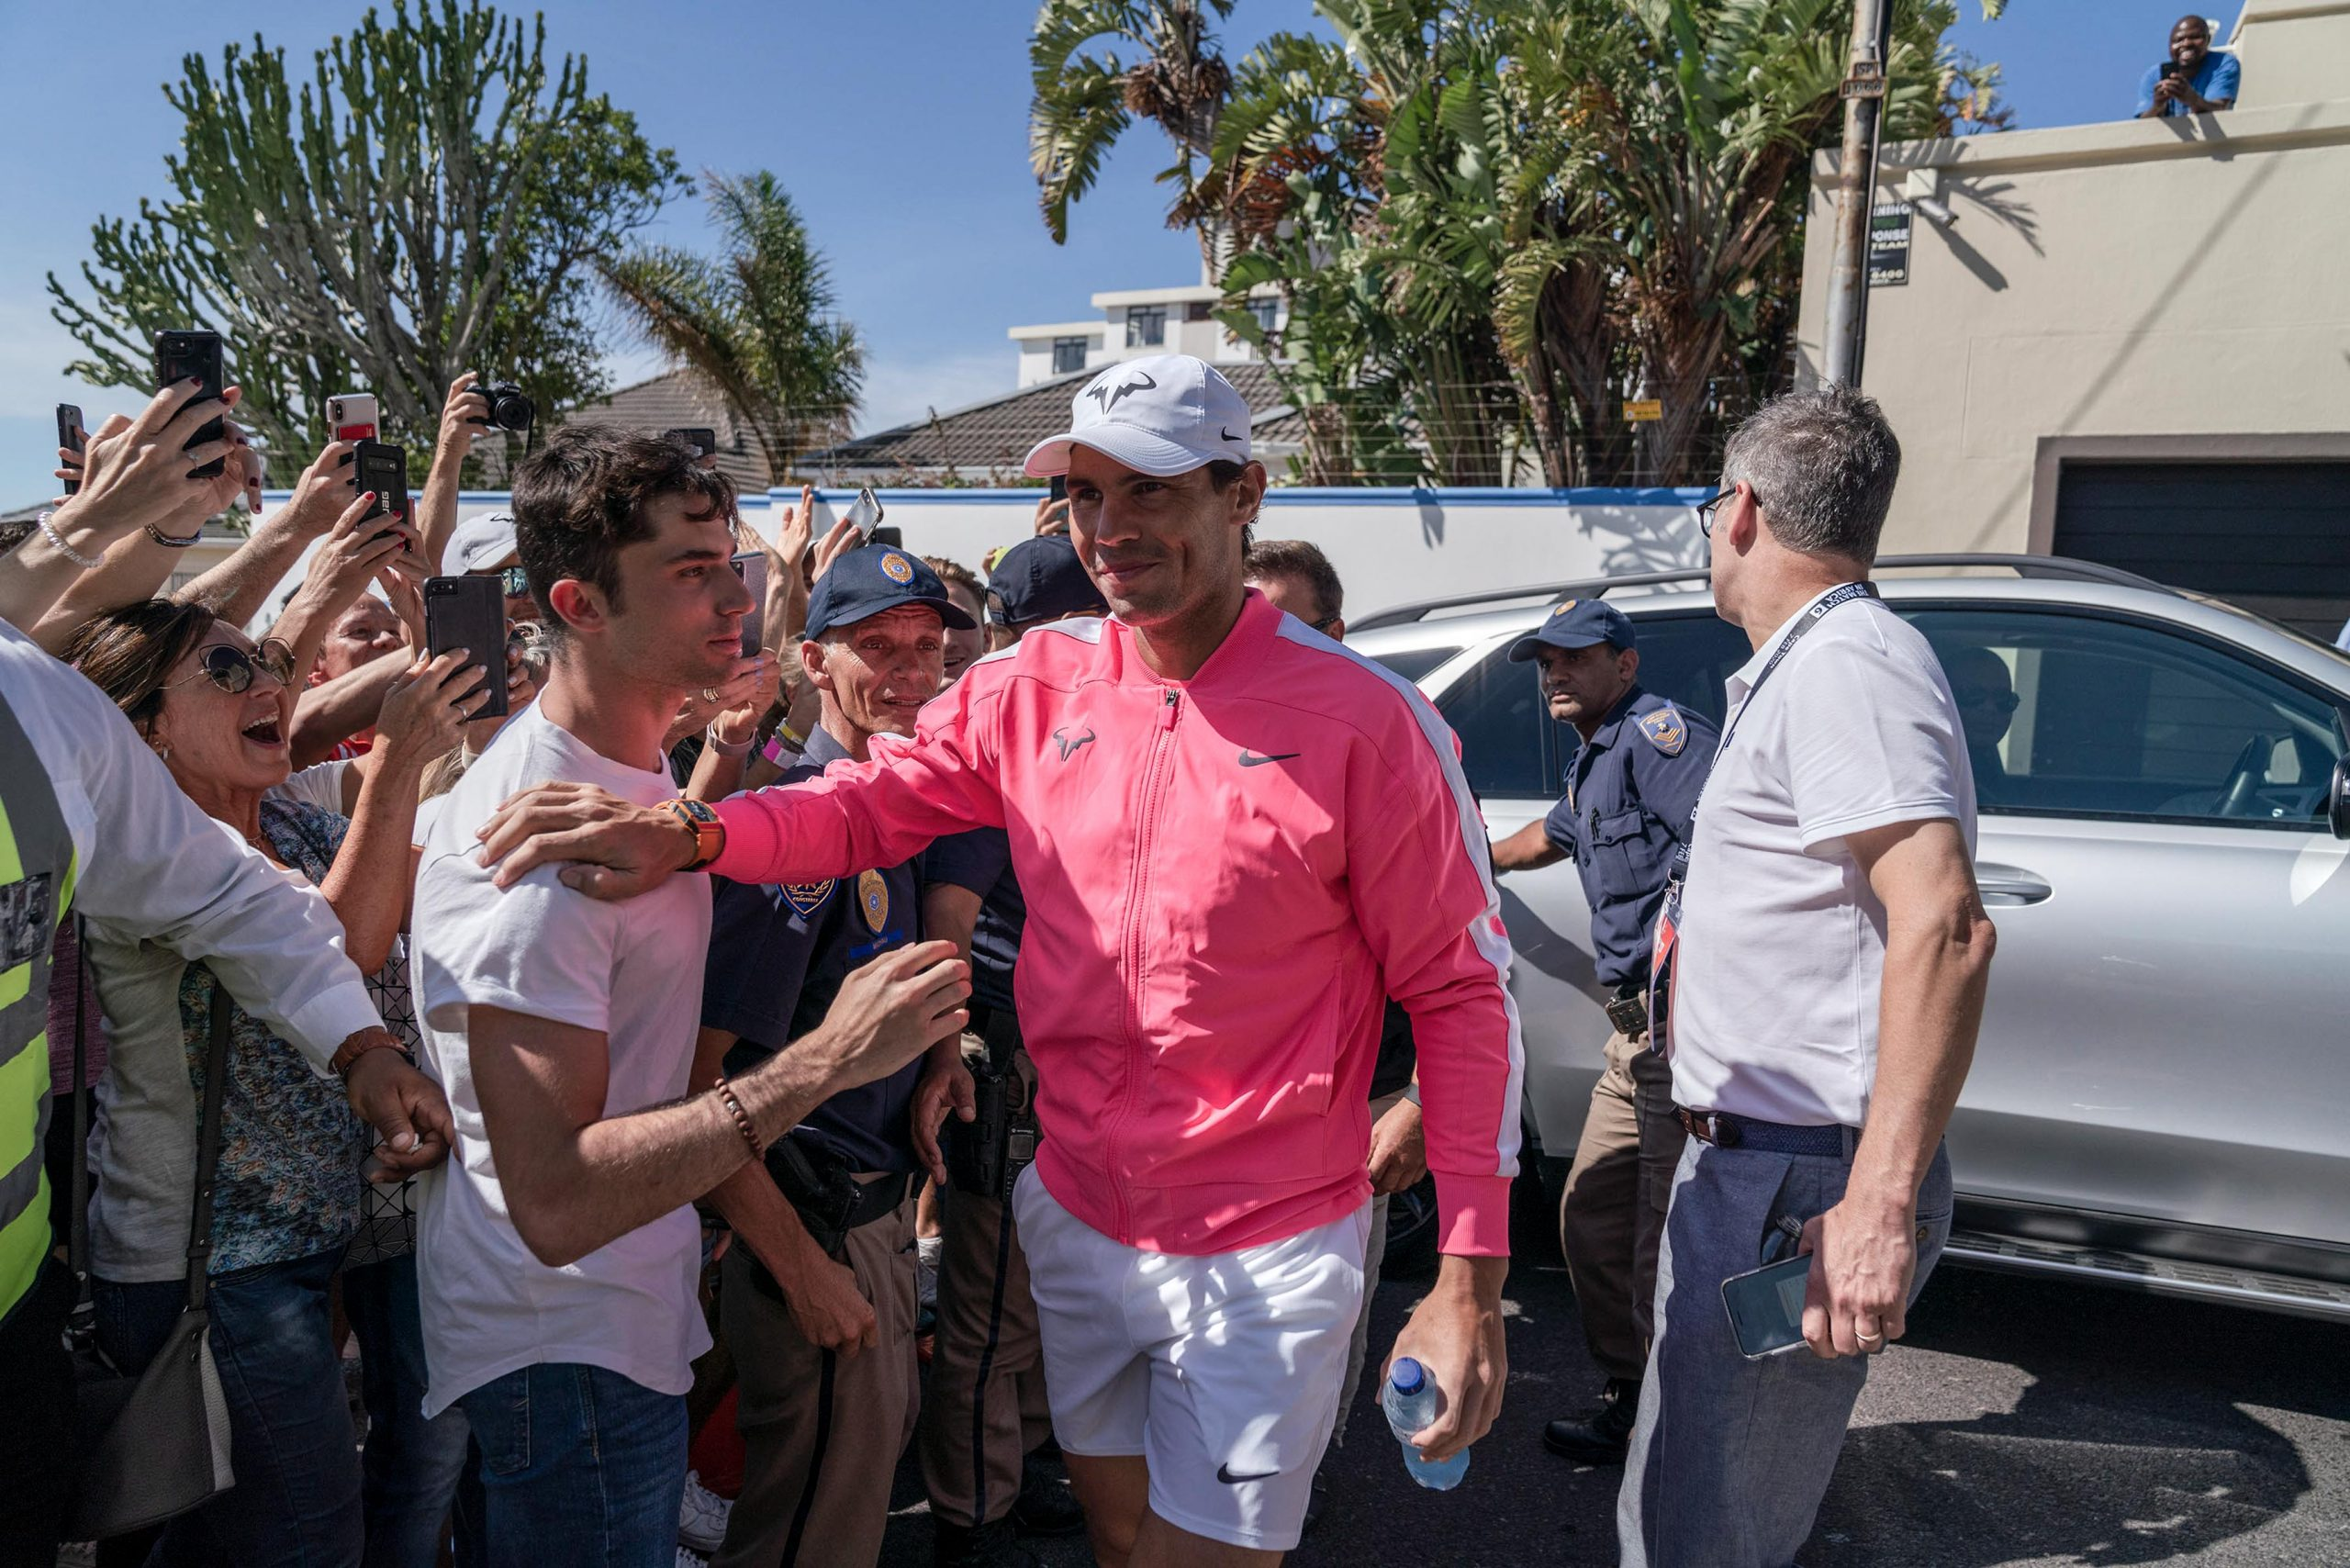 6 February 2020: Rafael Nadal enters the Anthony Harris Tennis Academy in Cape Town, where he made an appearance alongside Roger Federer ahead of Match in Africa 6. (Photograph by Ihsaan Haffejee)